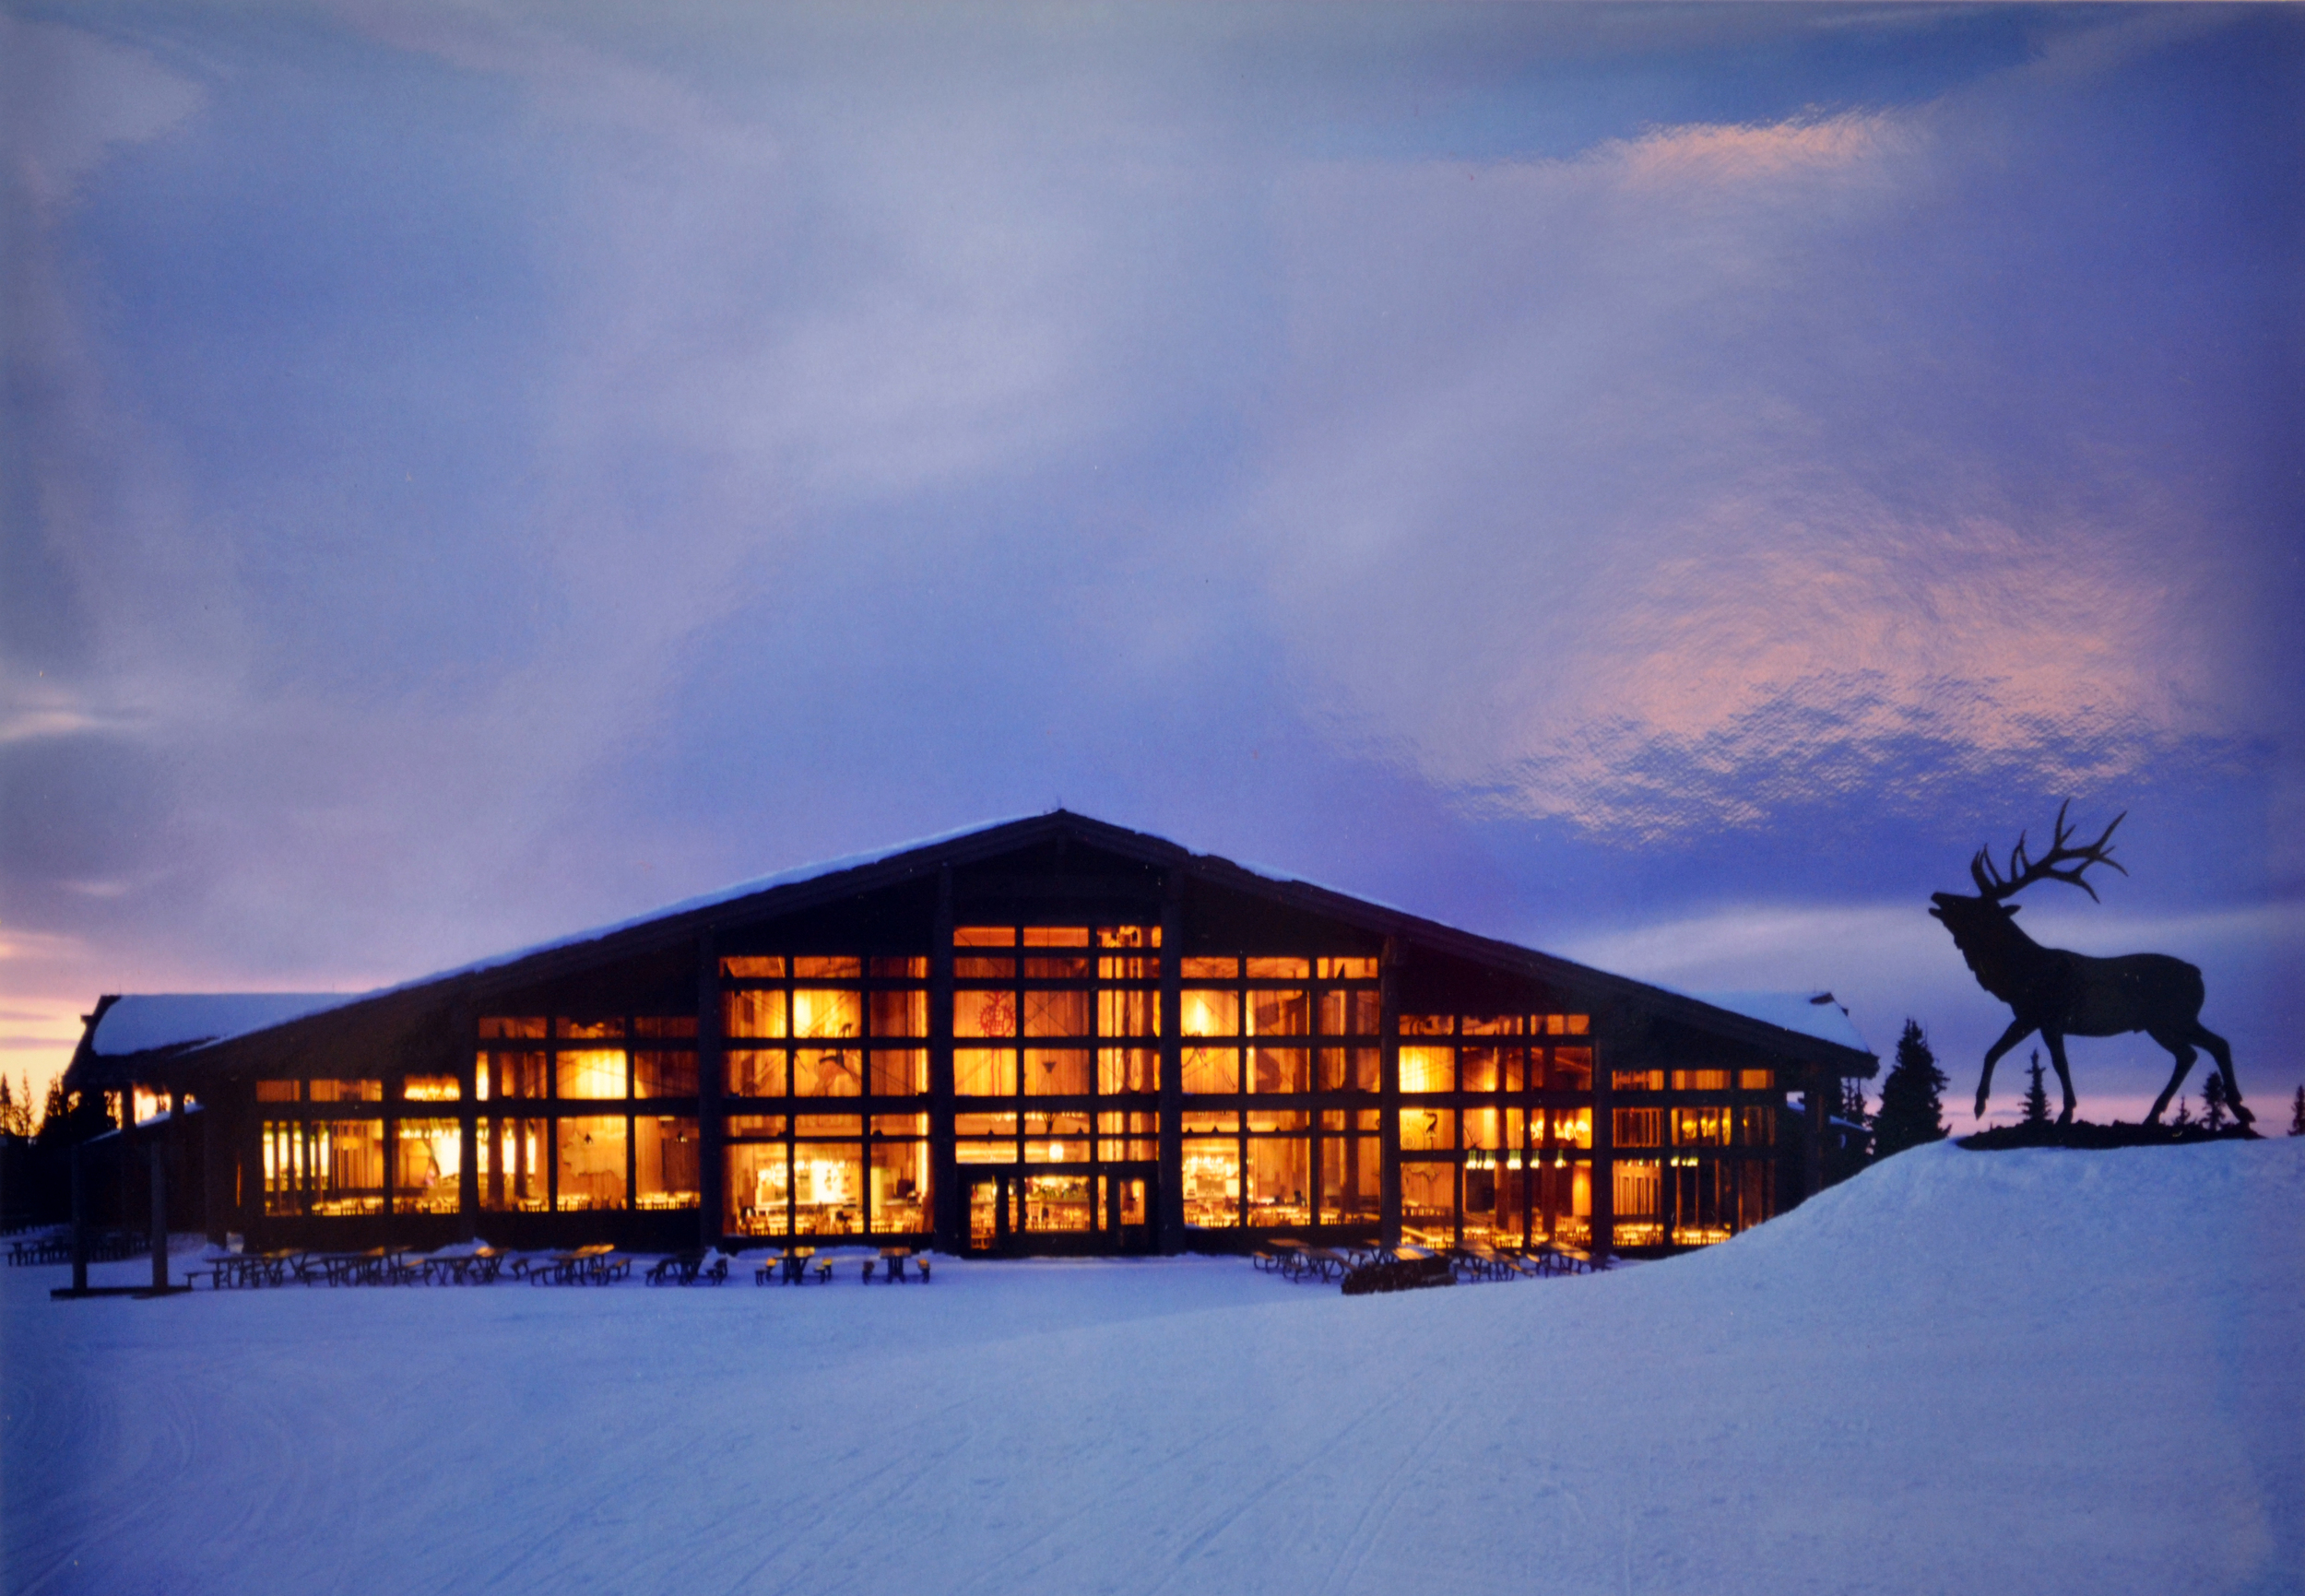 Hyder built the original Two Elk restaurant for Vail Resorts in 1991 and again in 2000 after the original had burned down